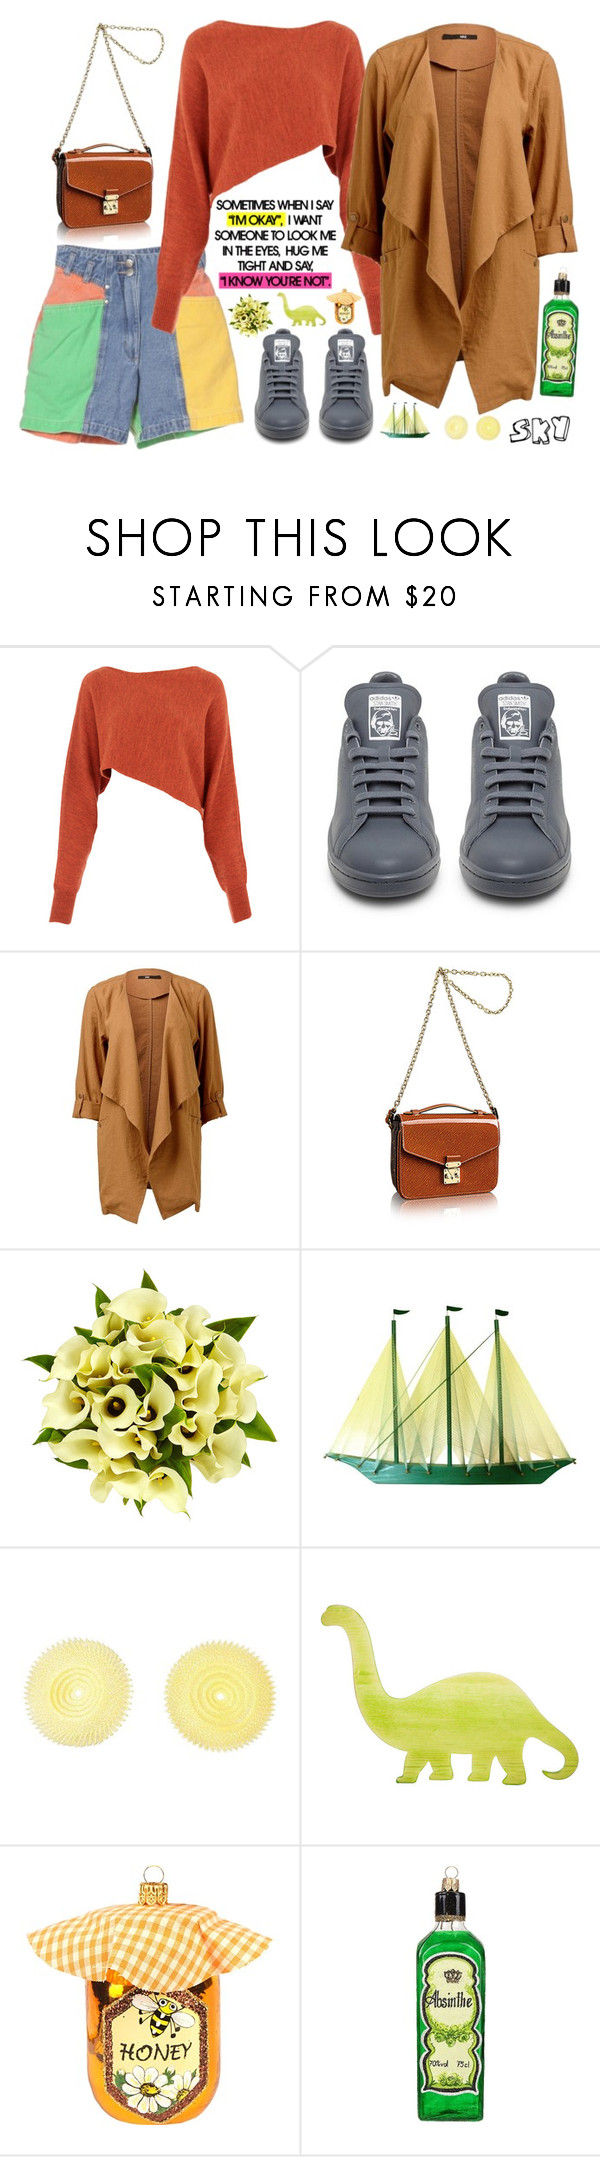 """s k y"" by skyl19 ❤ liked on Polyvore featuring Crea Concept, adidas, Louis Vuitton, Fountain and Harrods"